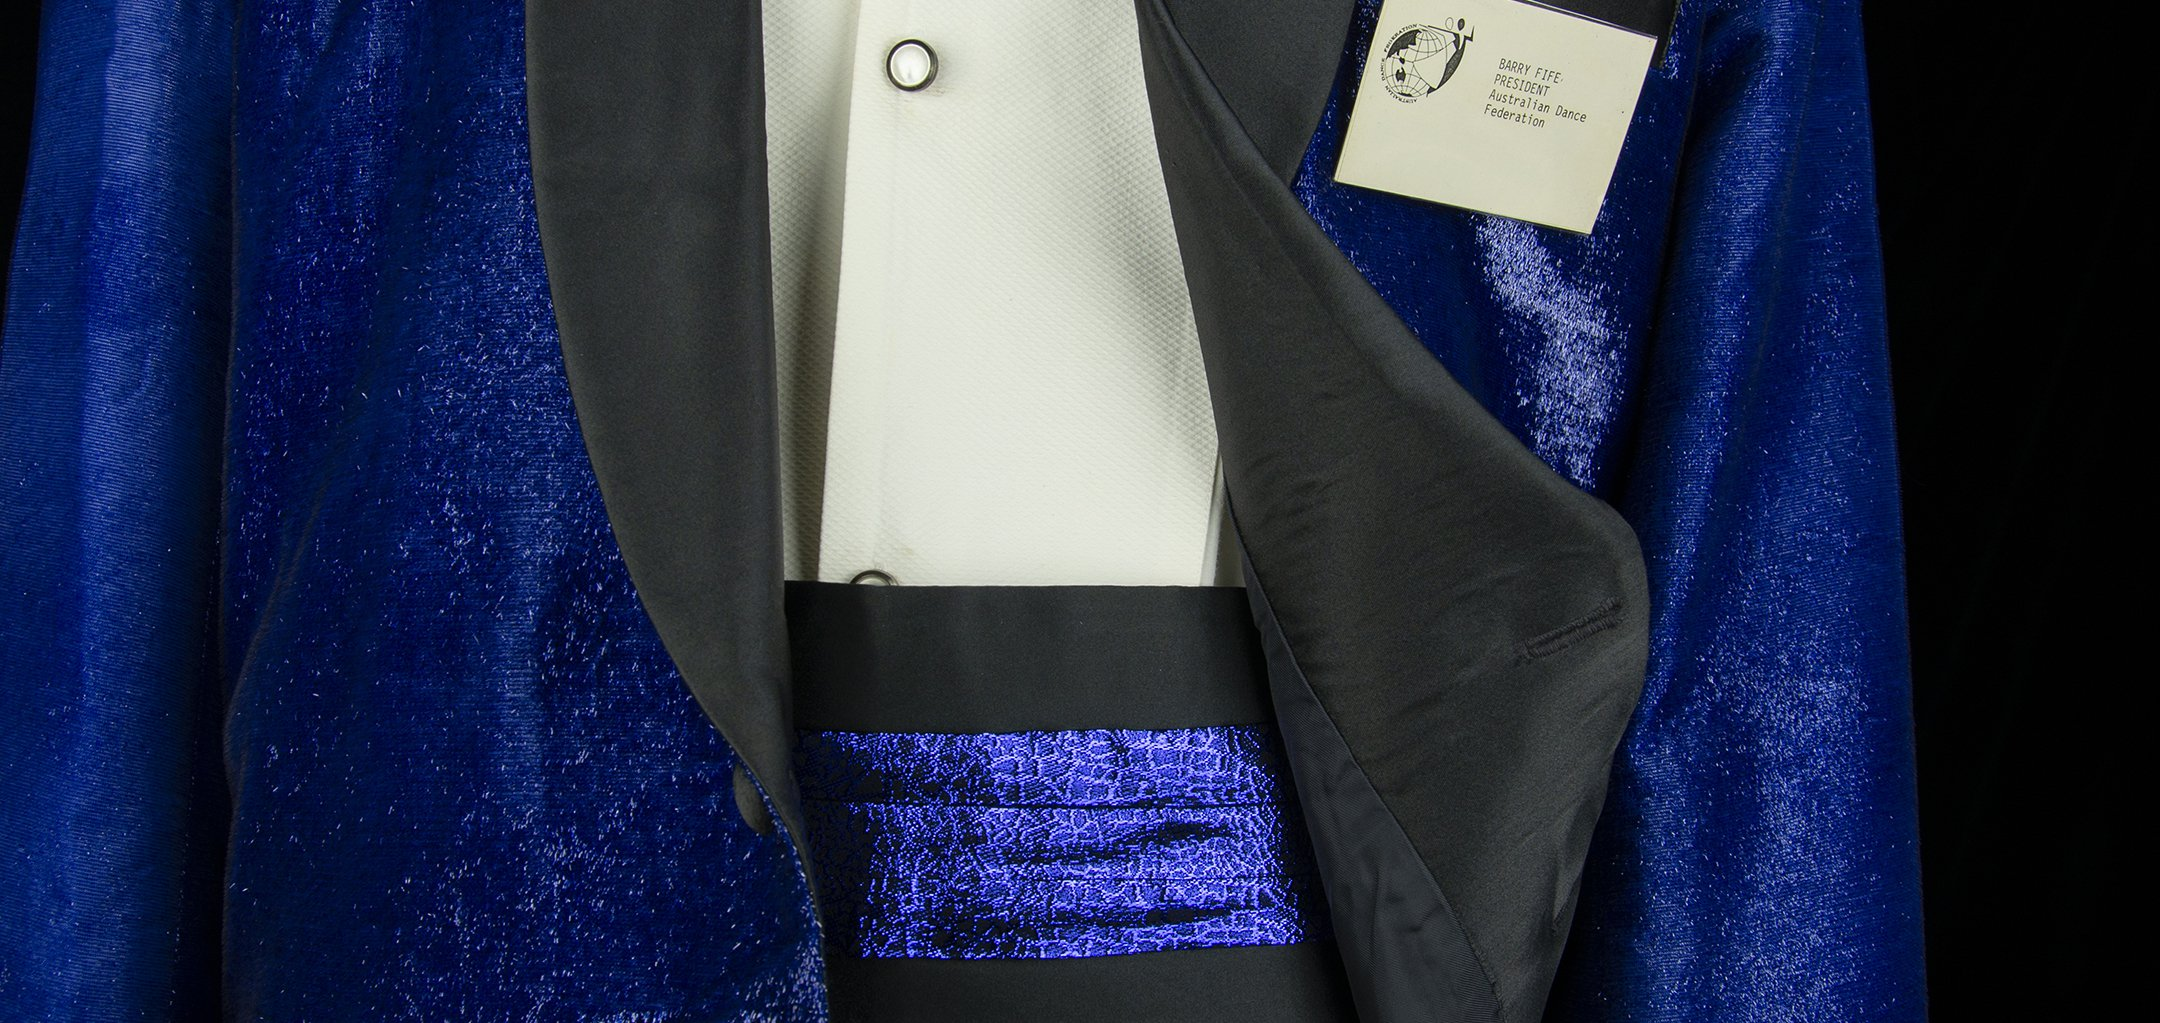 Barry Fife Blue Costume (detail). Photograph by Egmont Contreras